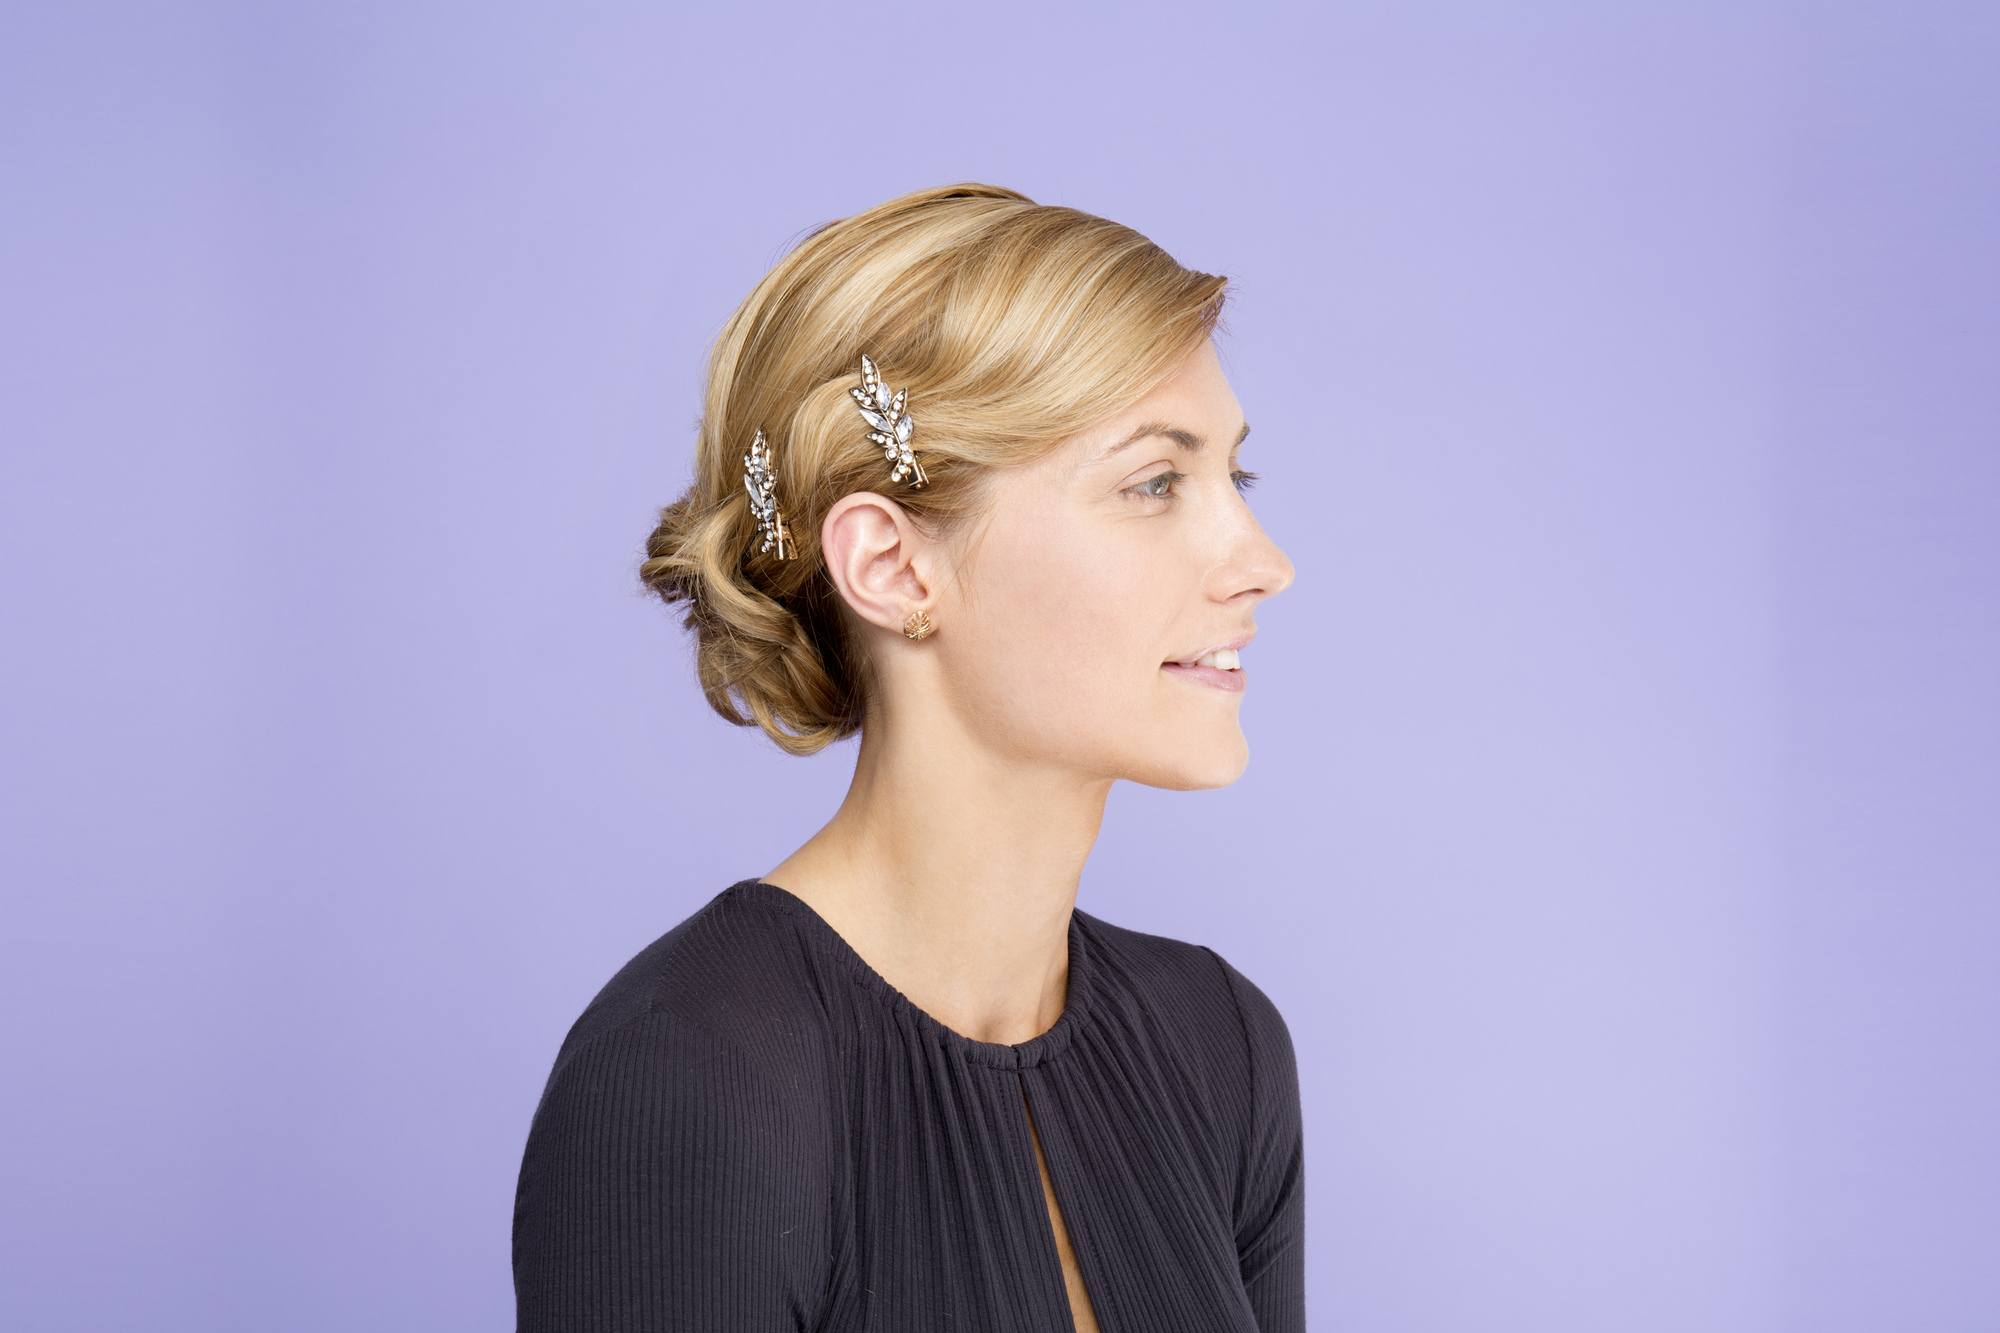 Blonde hair in a side updo finished with silver jewelled accessories